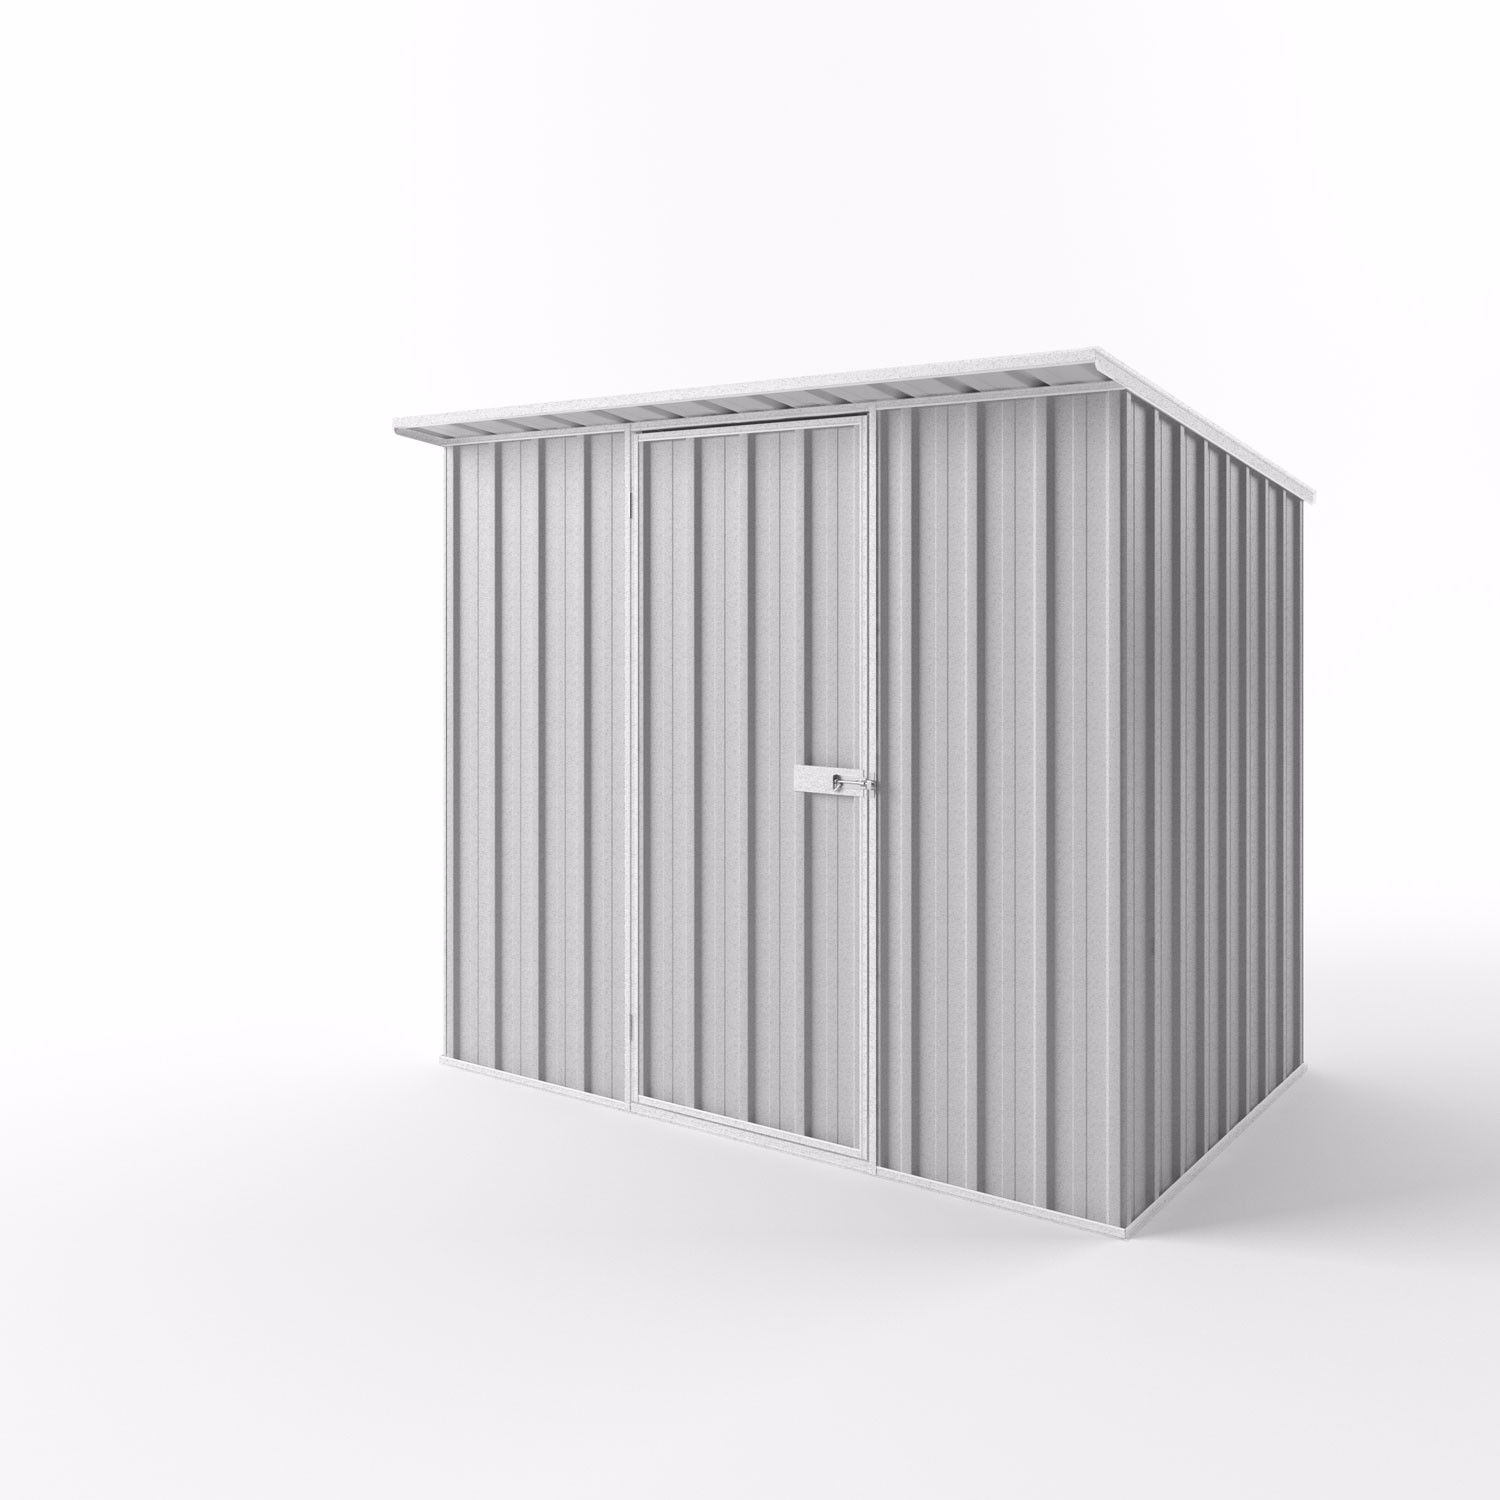 Skillion Garden Shed - 2.25m x 1.50m x 2.10m Height